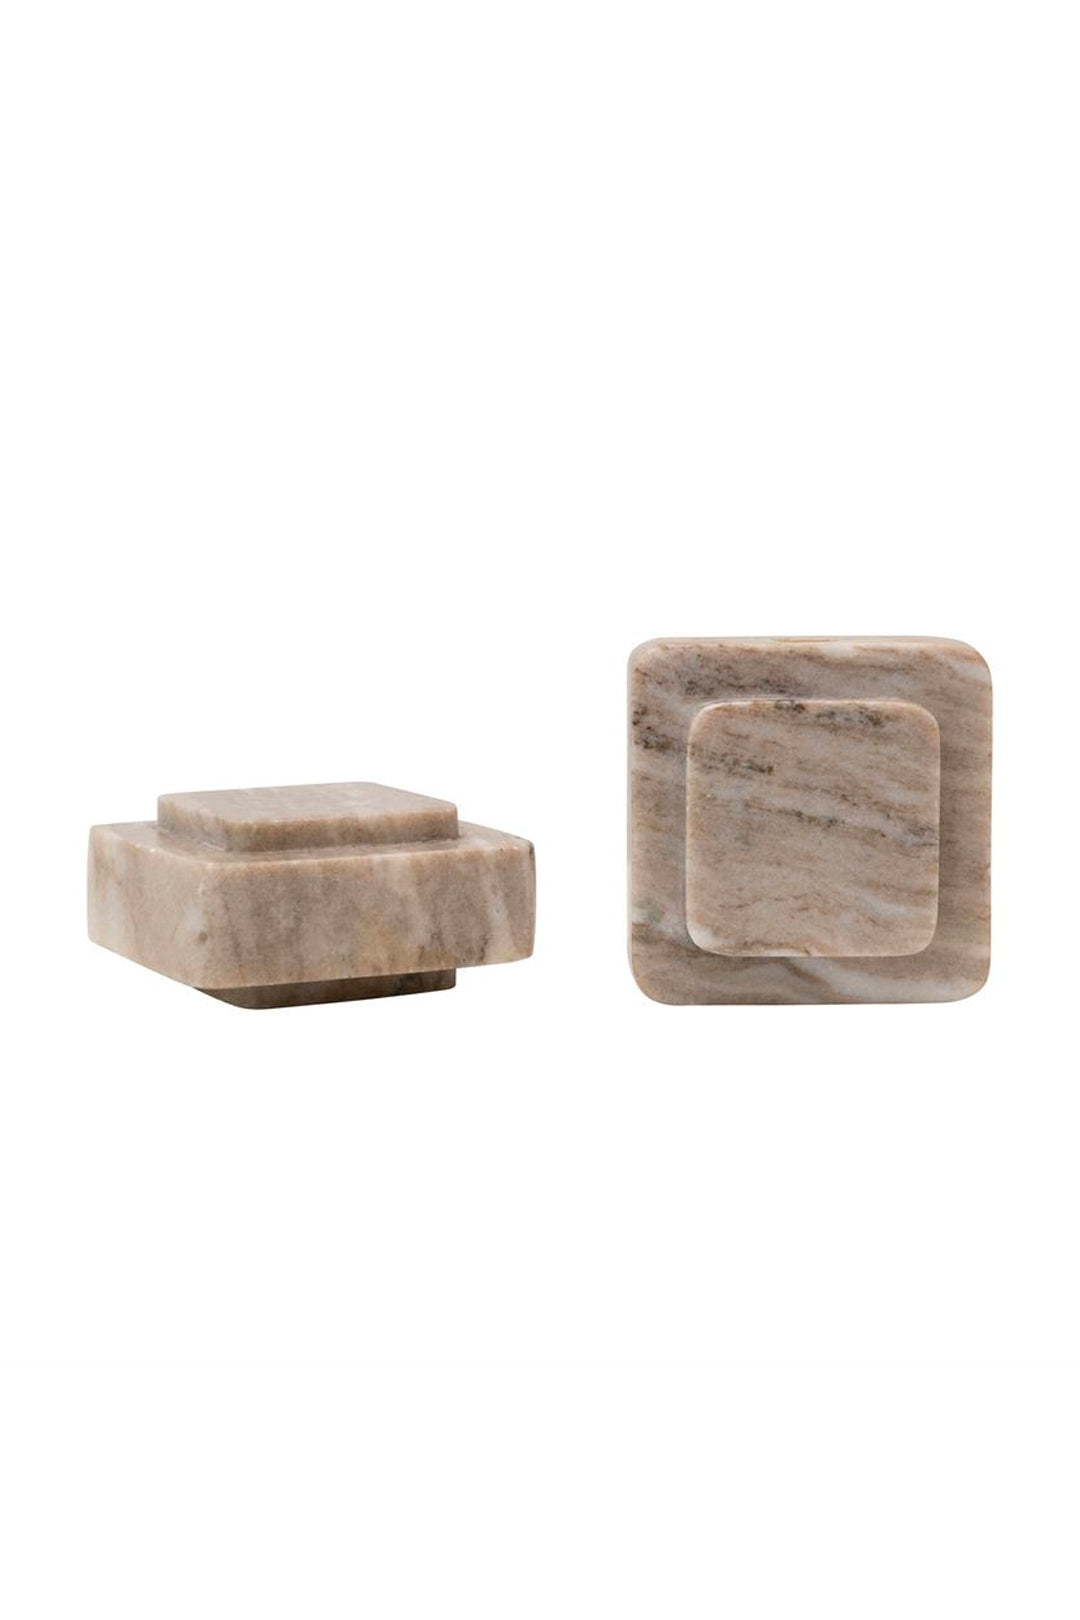 beige marble bookends - set of 2